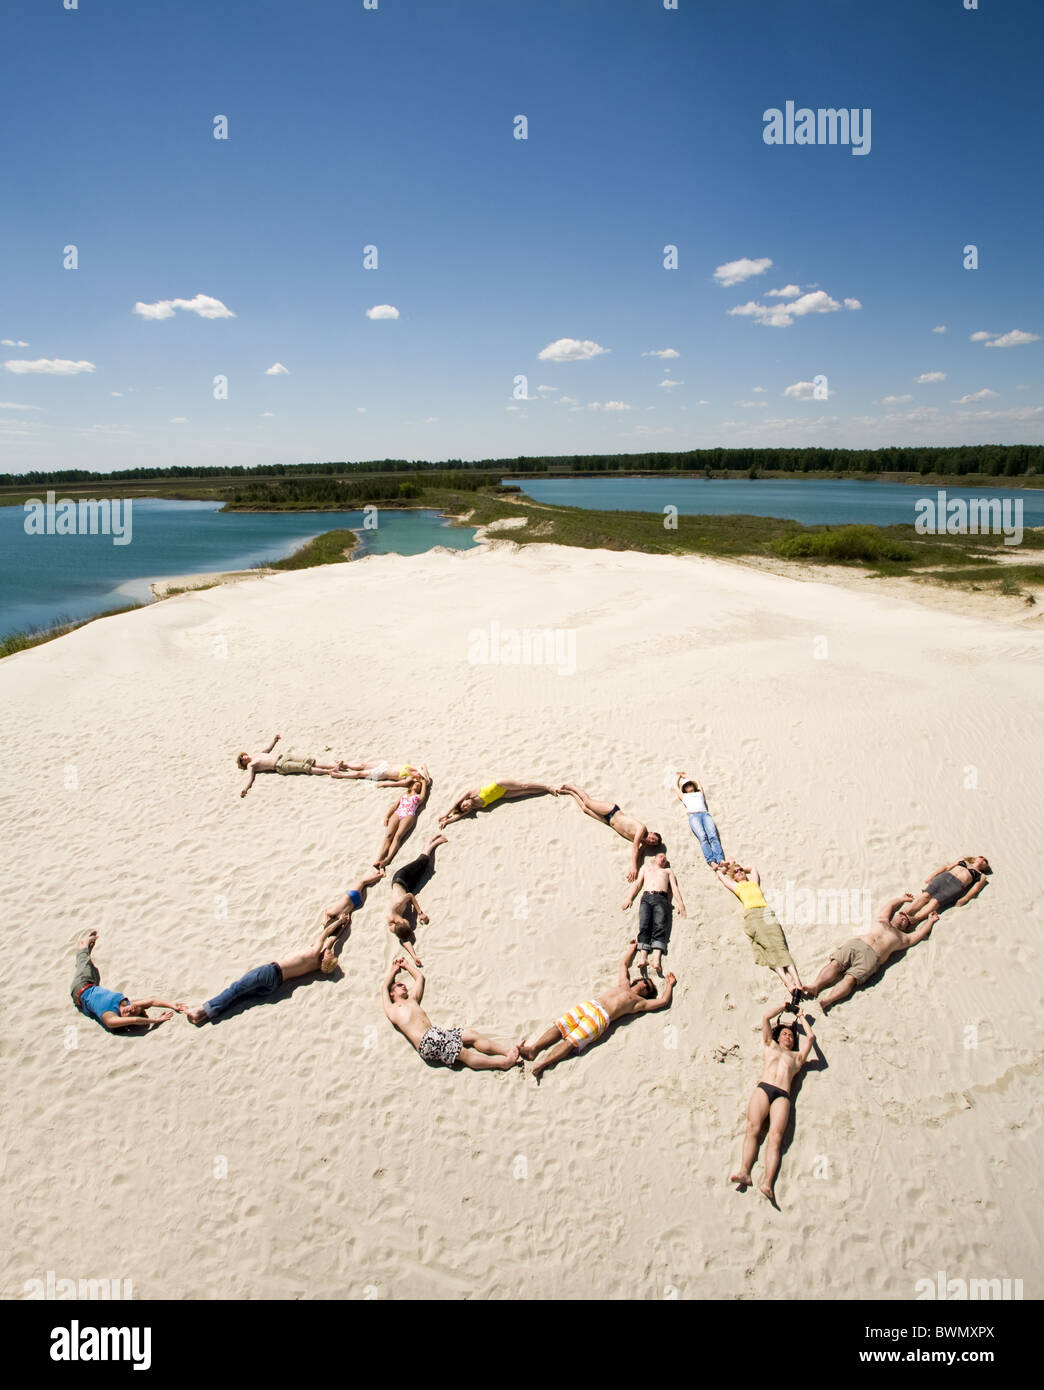 Image of word joy made up of young people sunbathing with sea and sky at background - Stock Image